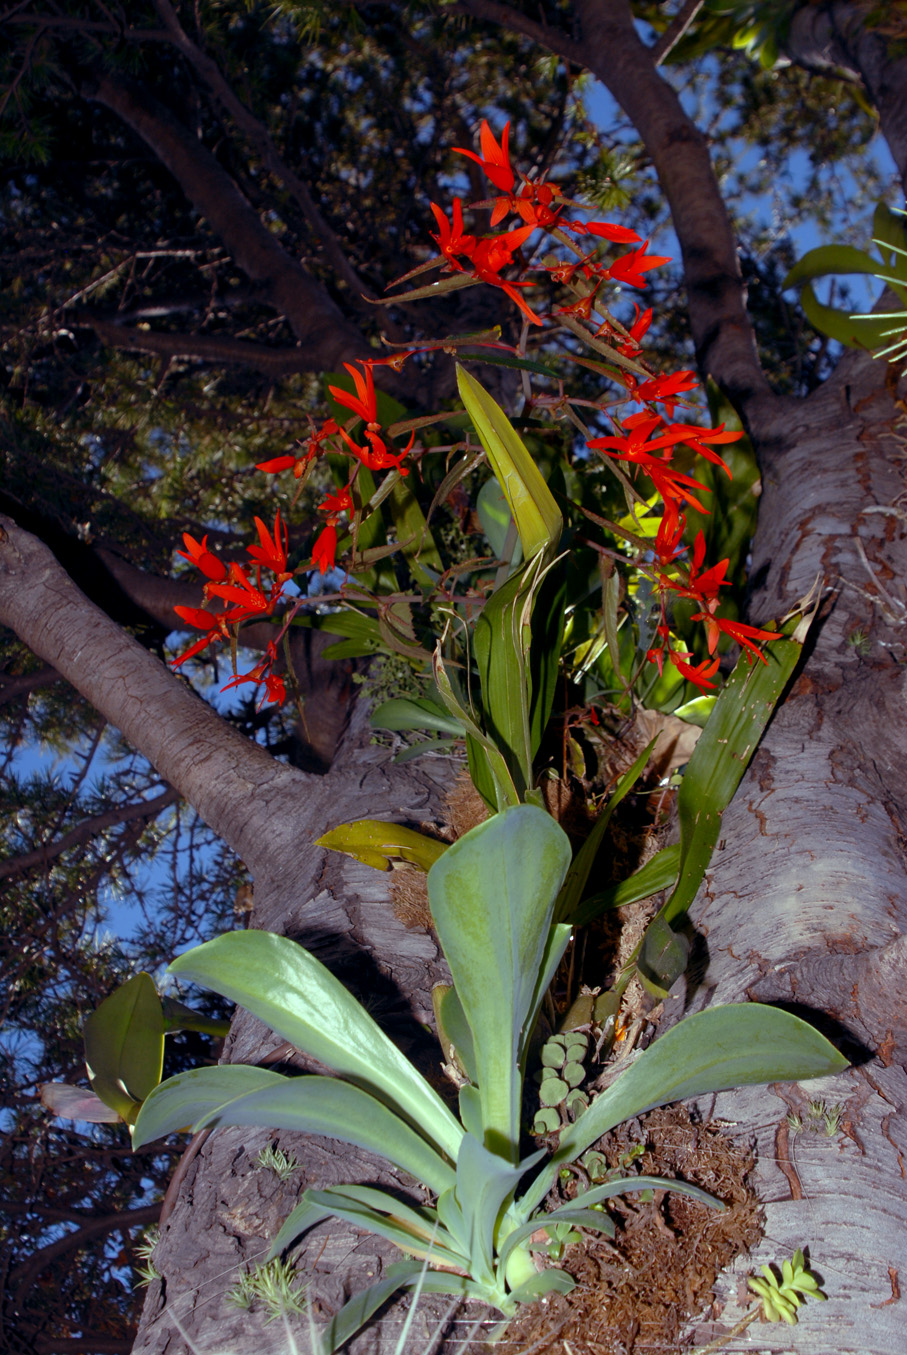 Begonia boliviensis growing Epiphytically